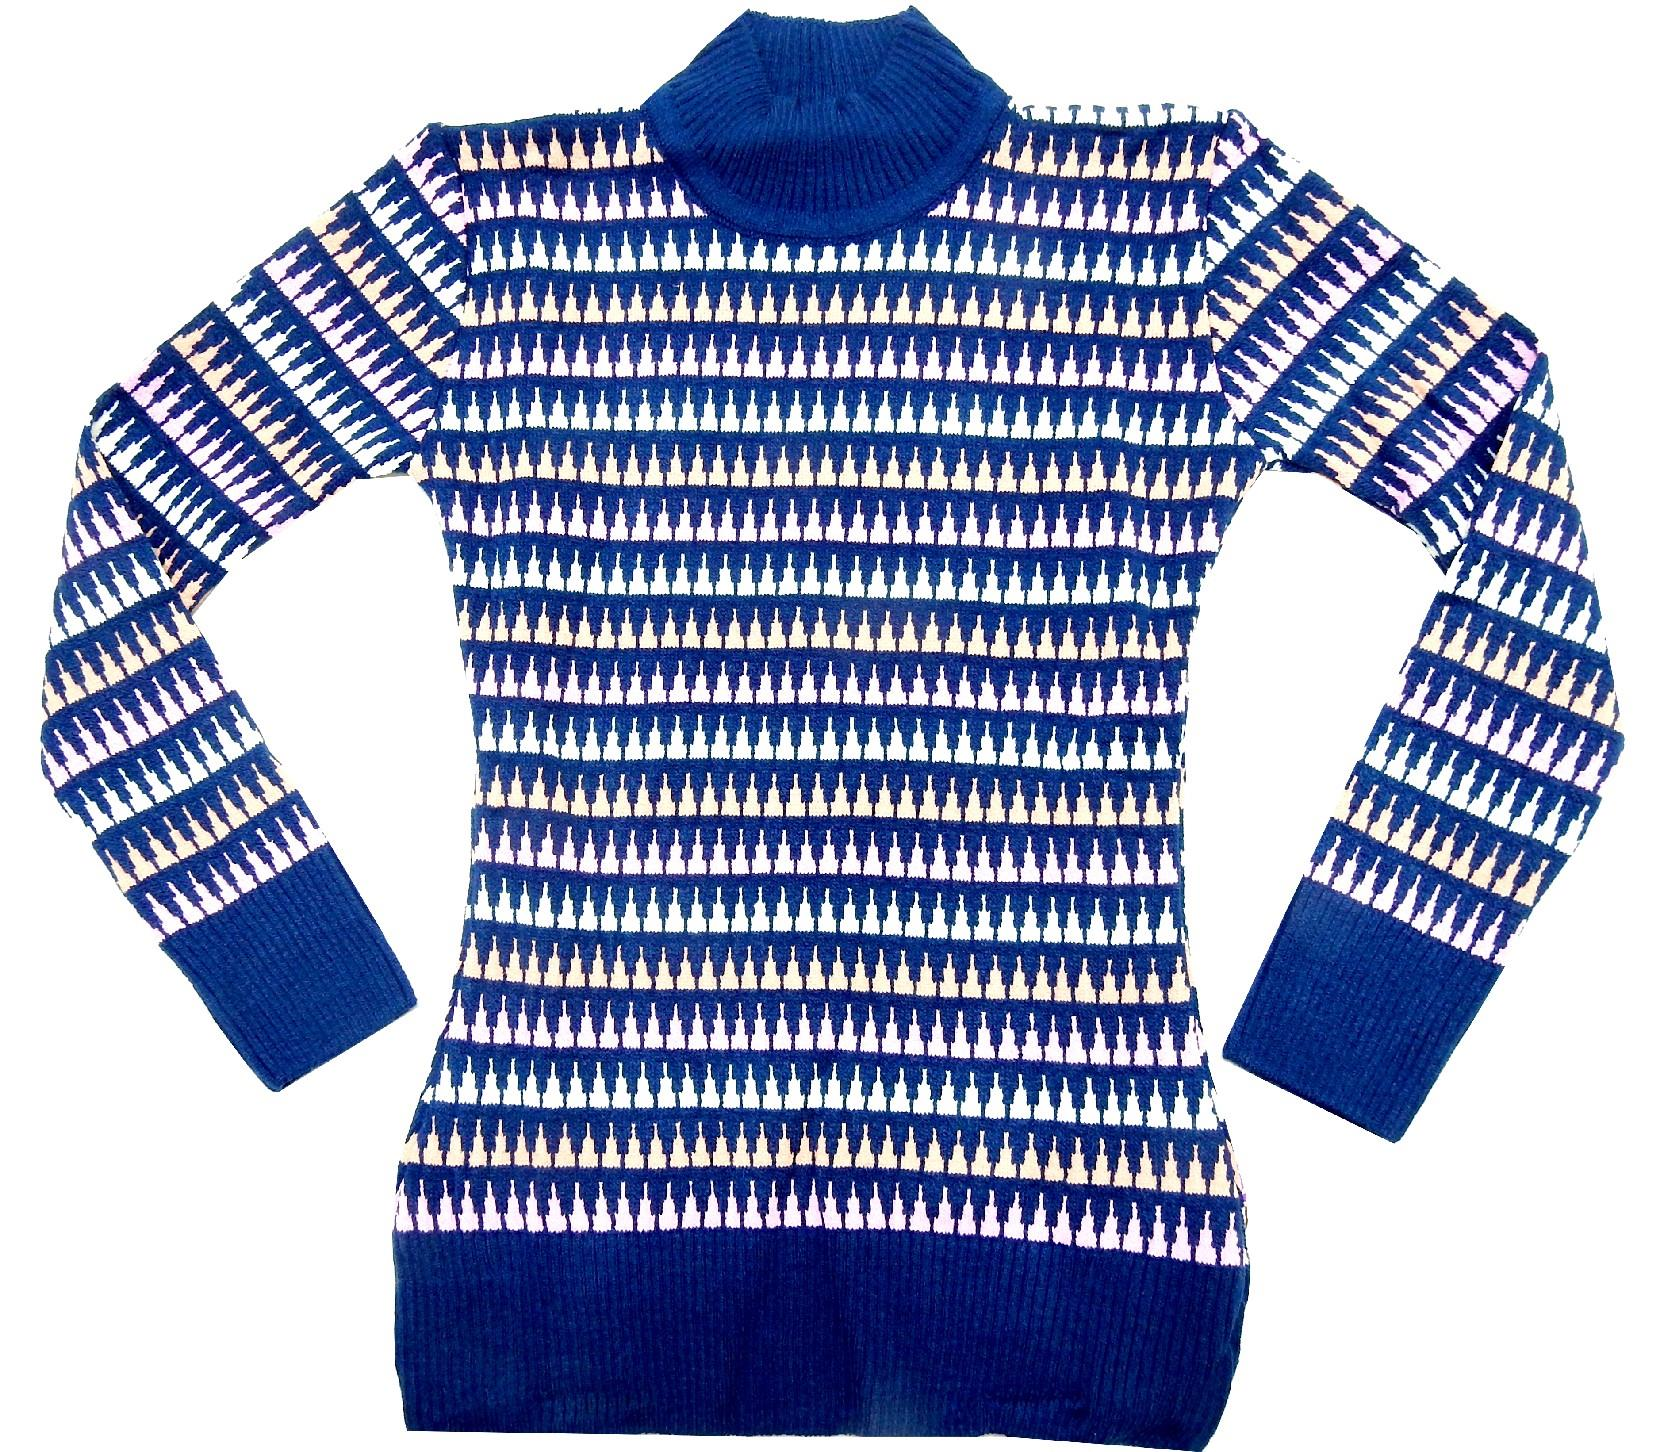 WHOLESALE STRIPED SWEATER PULLOVER FOR GIRL (10-12 AGE)